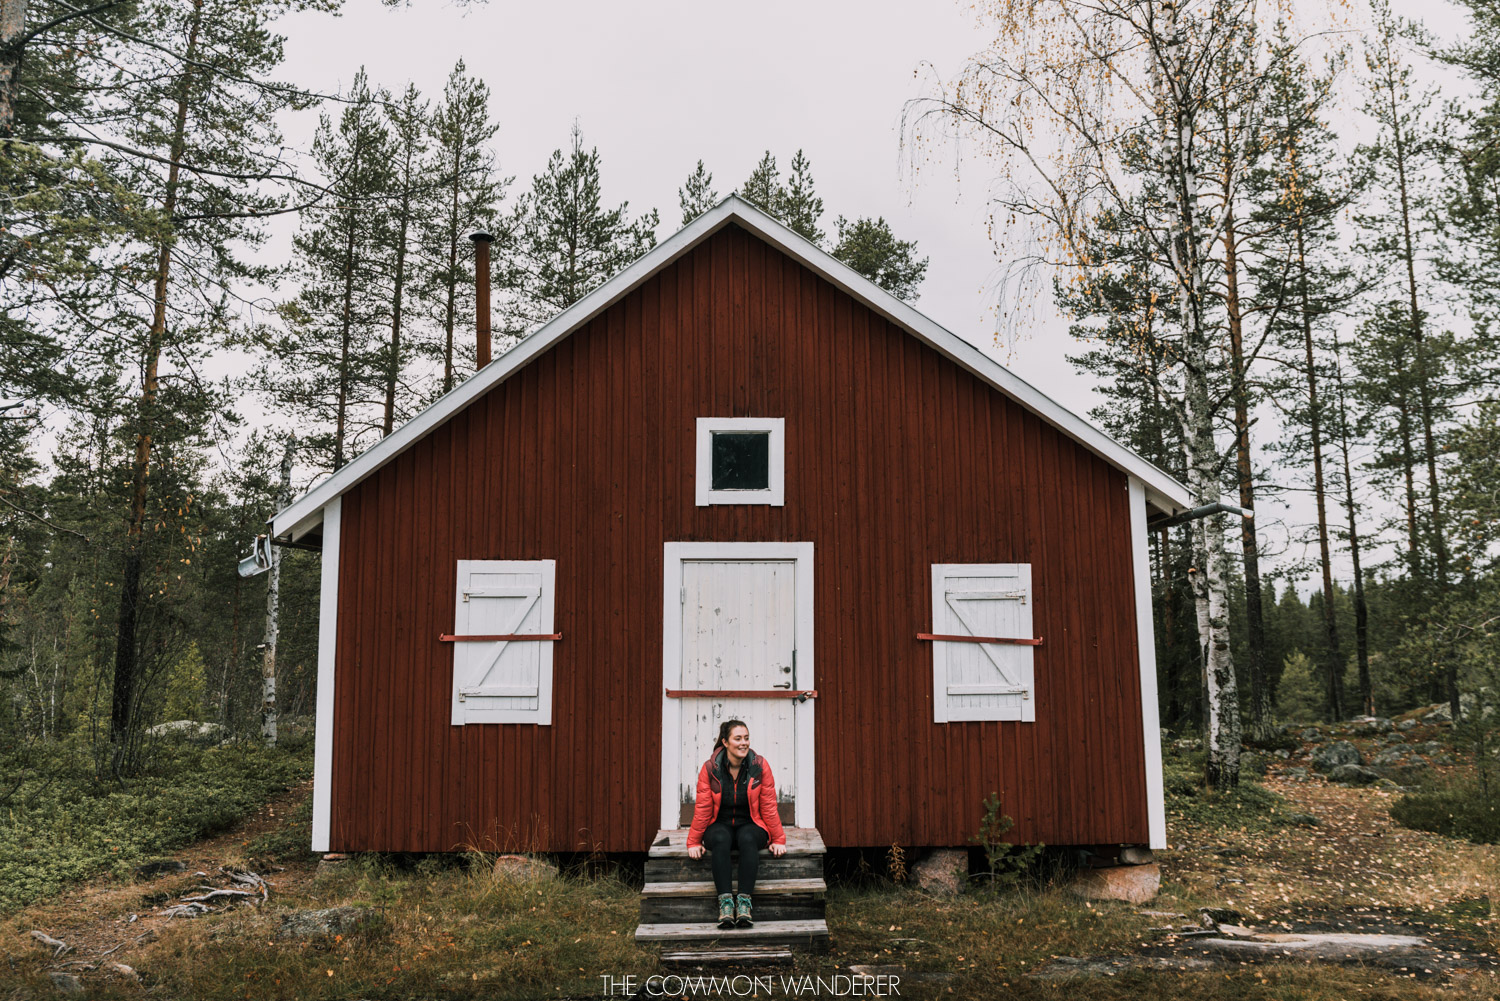 Lapland Pictures: girl sitting by red cabin in Storforsen, Swedish Lapland